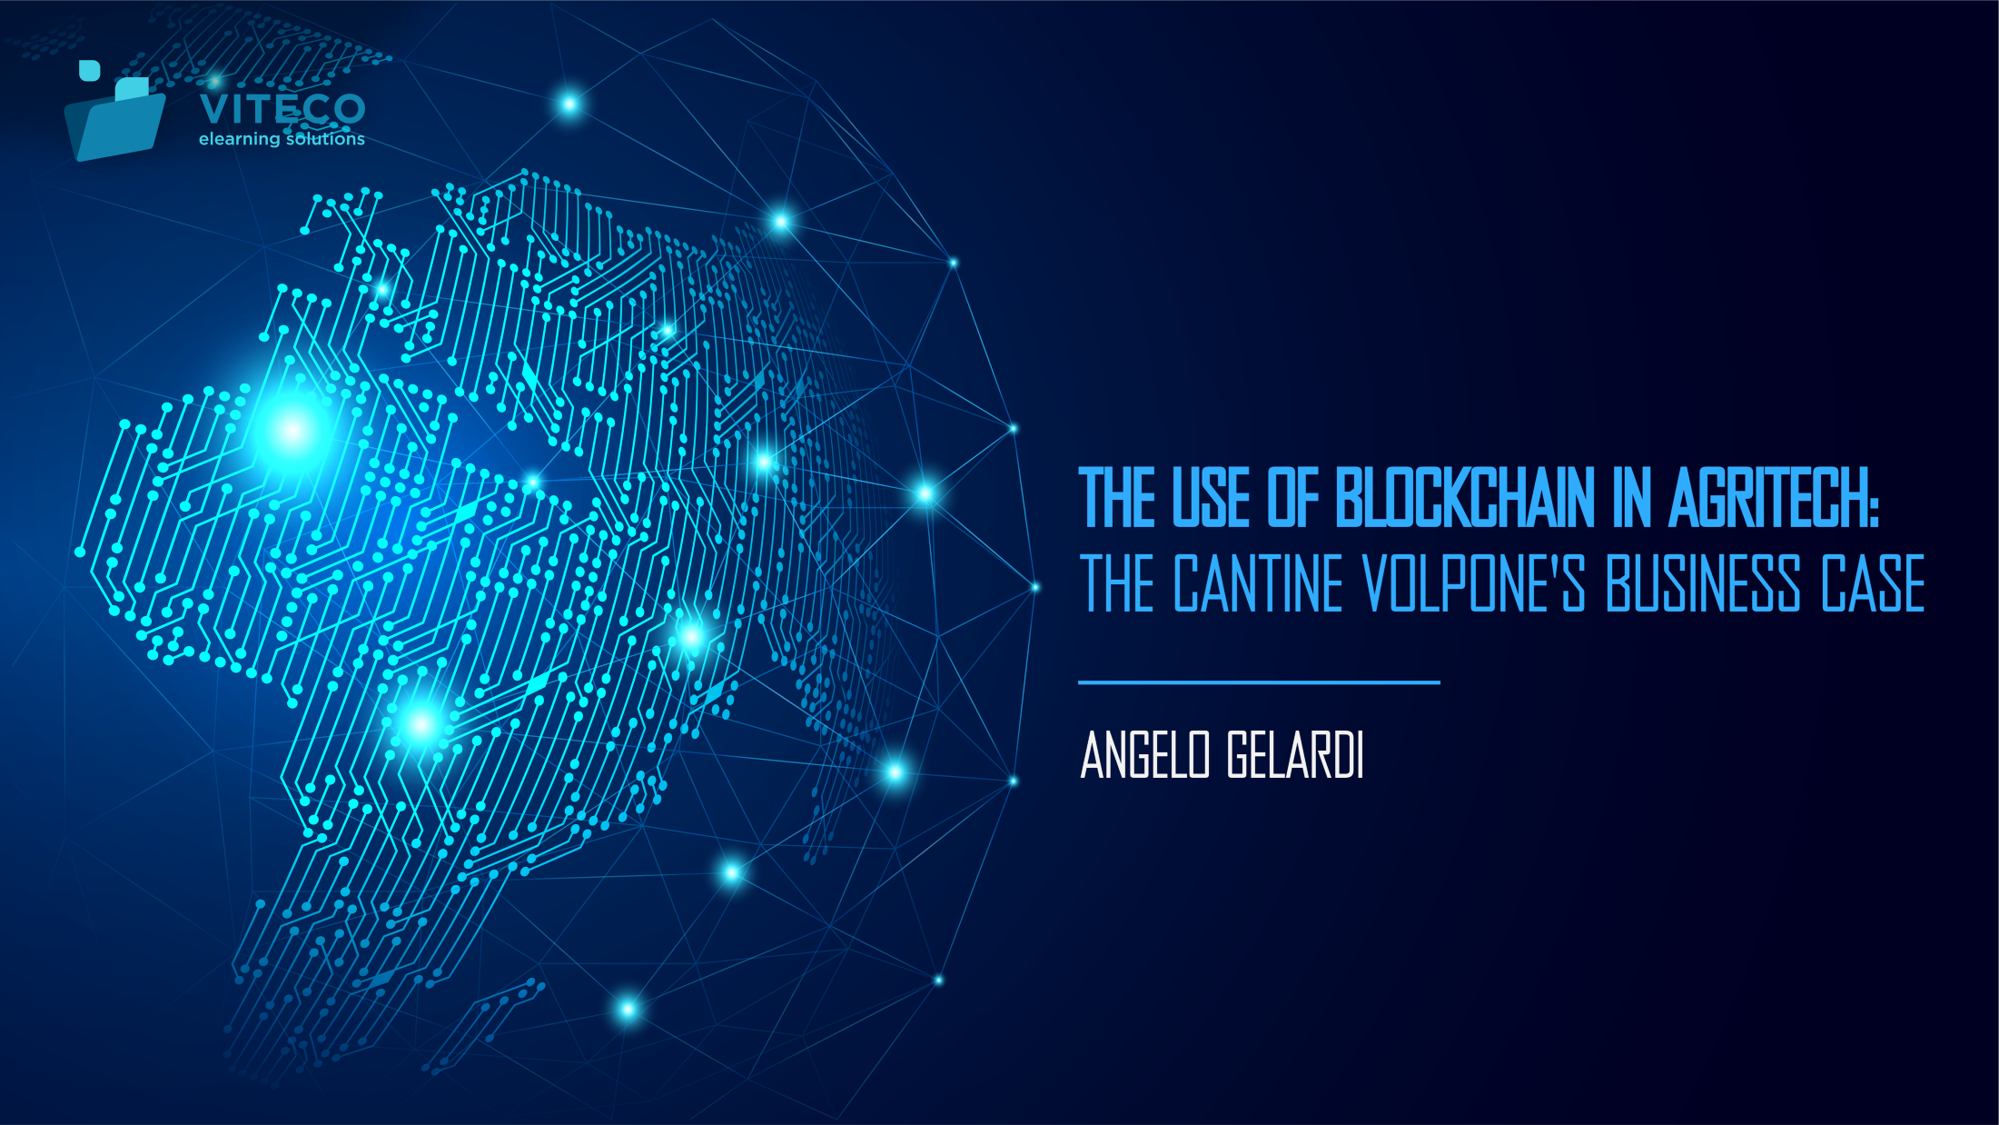 The Use of Blockchain in Agritech- Cantine Volpone Business case